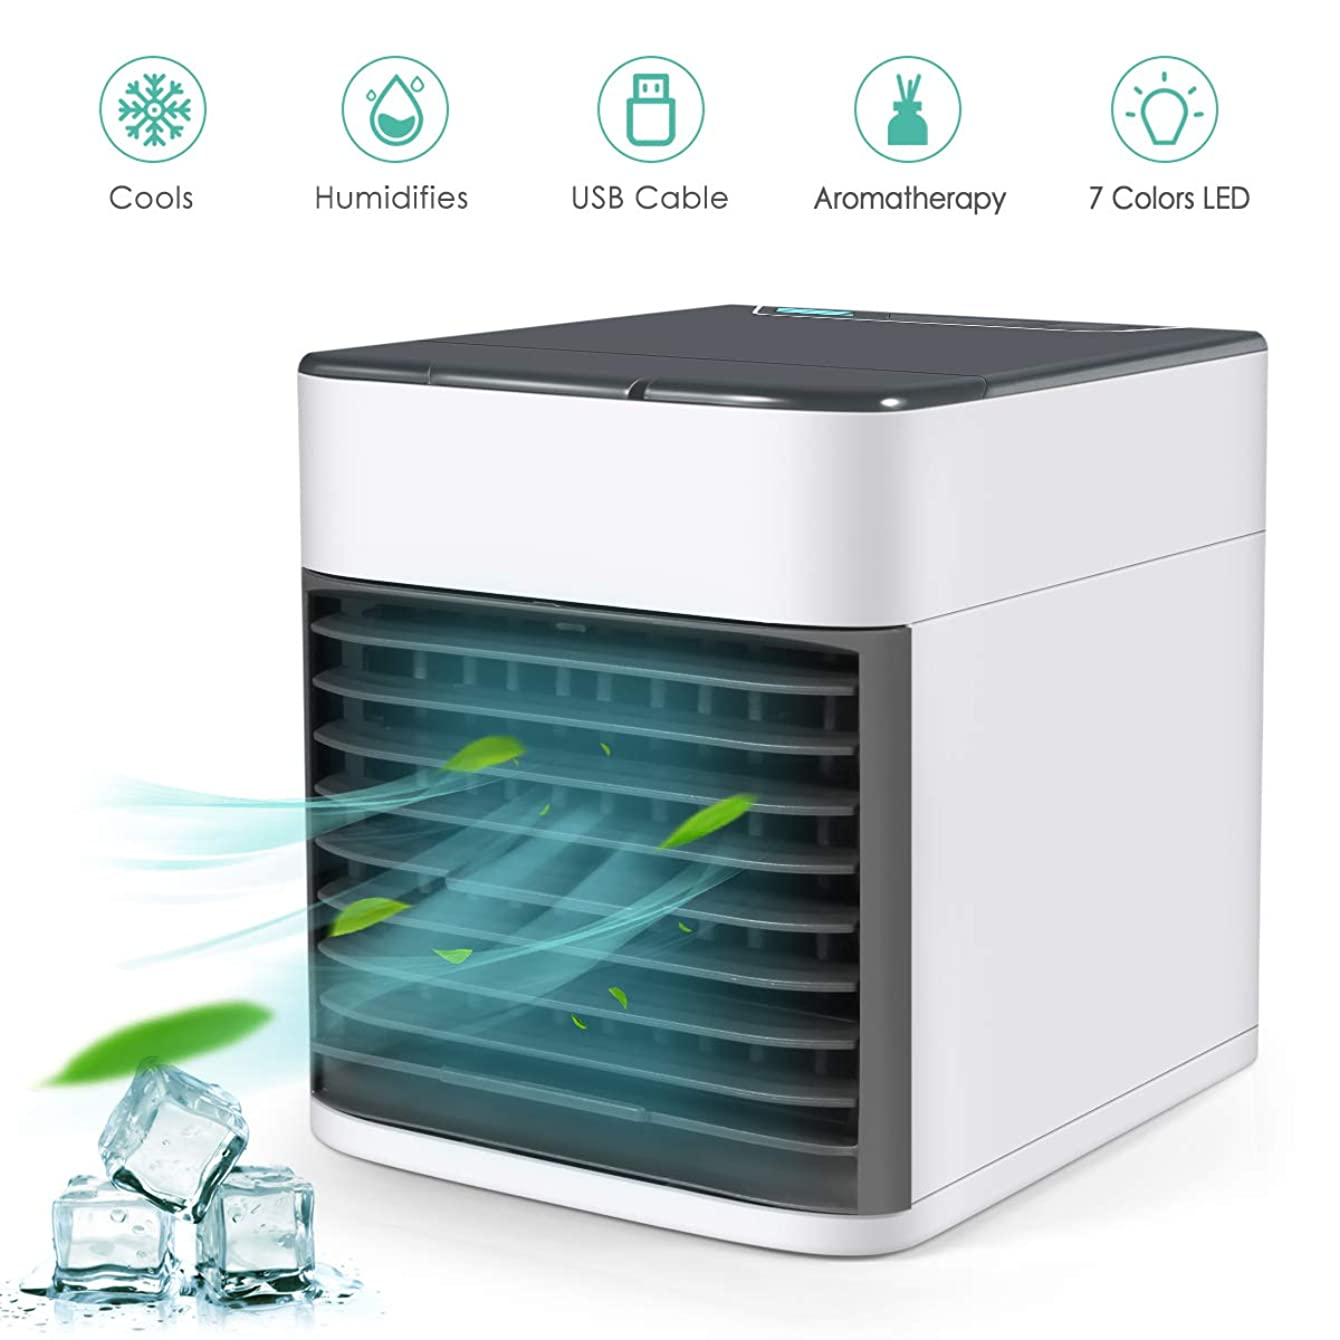 VANTAKOOL Air Conditioner Fan, Personal USB Air Cooler with LED Lights,Mini Air Purifier Humidifier for Home Room Office,Mini Desk Fan knpiabxmylhlr46